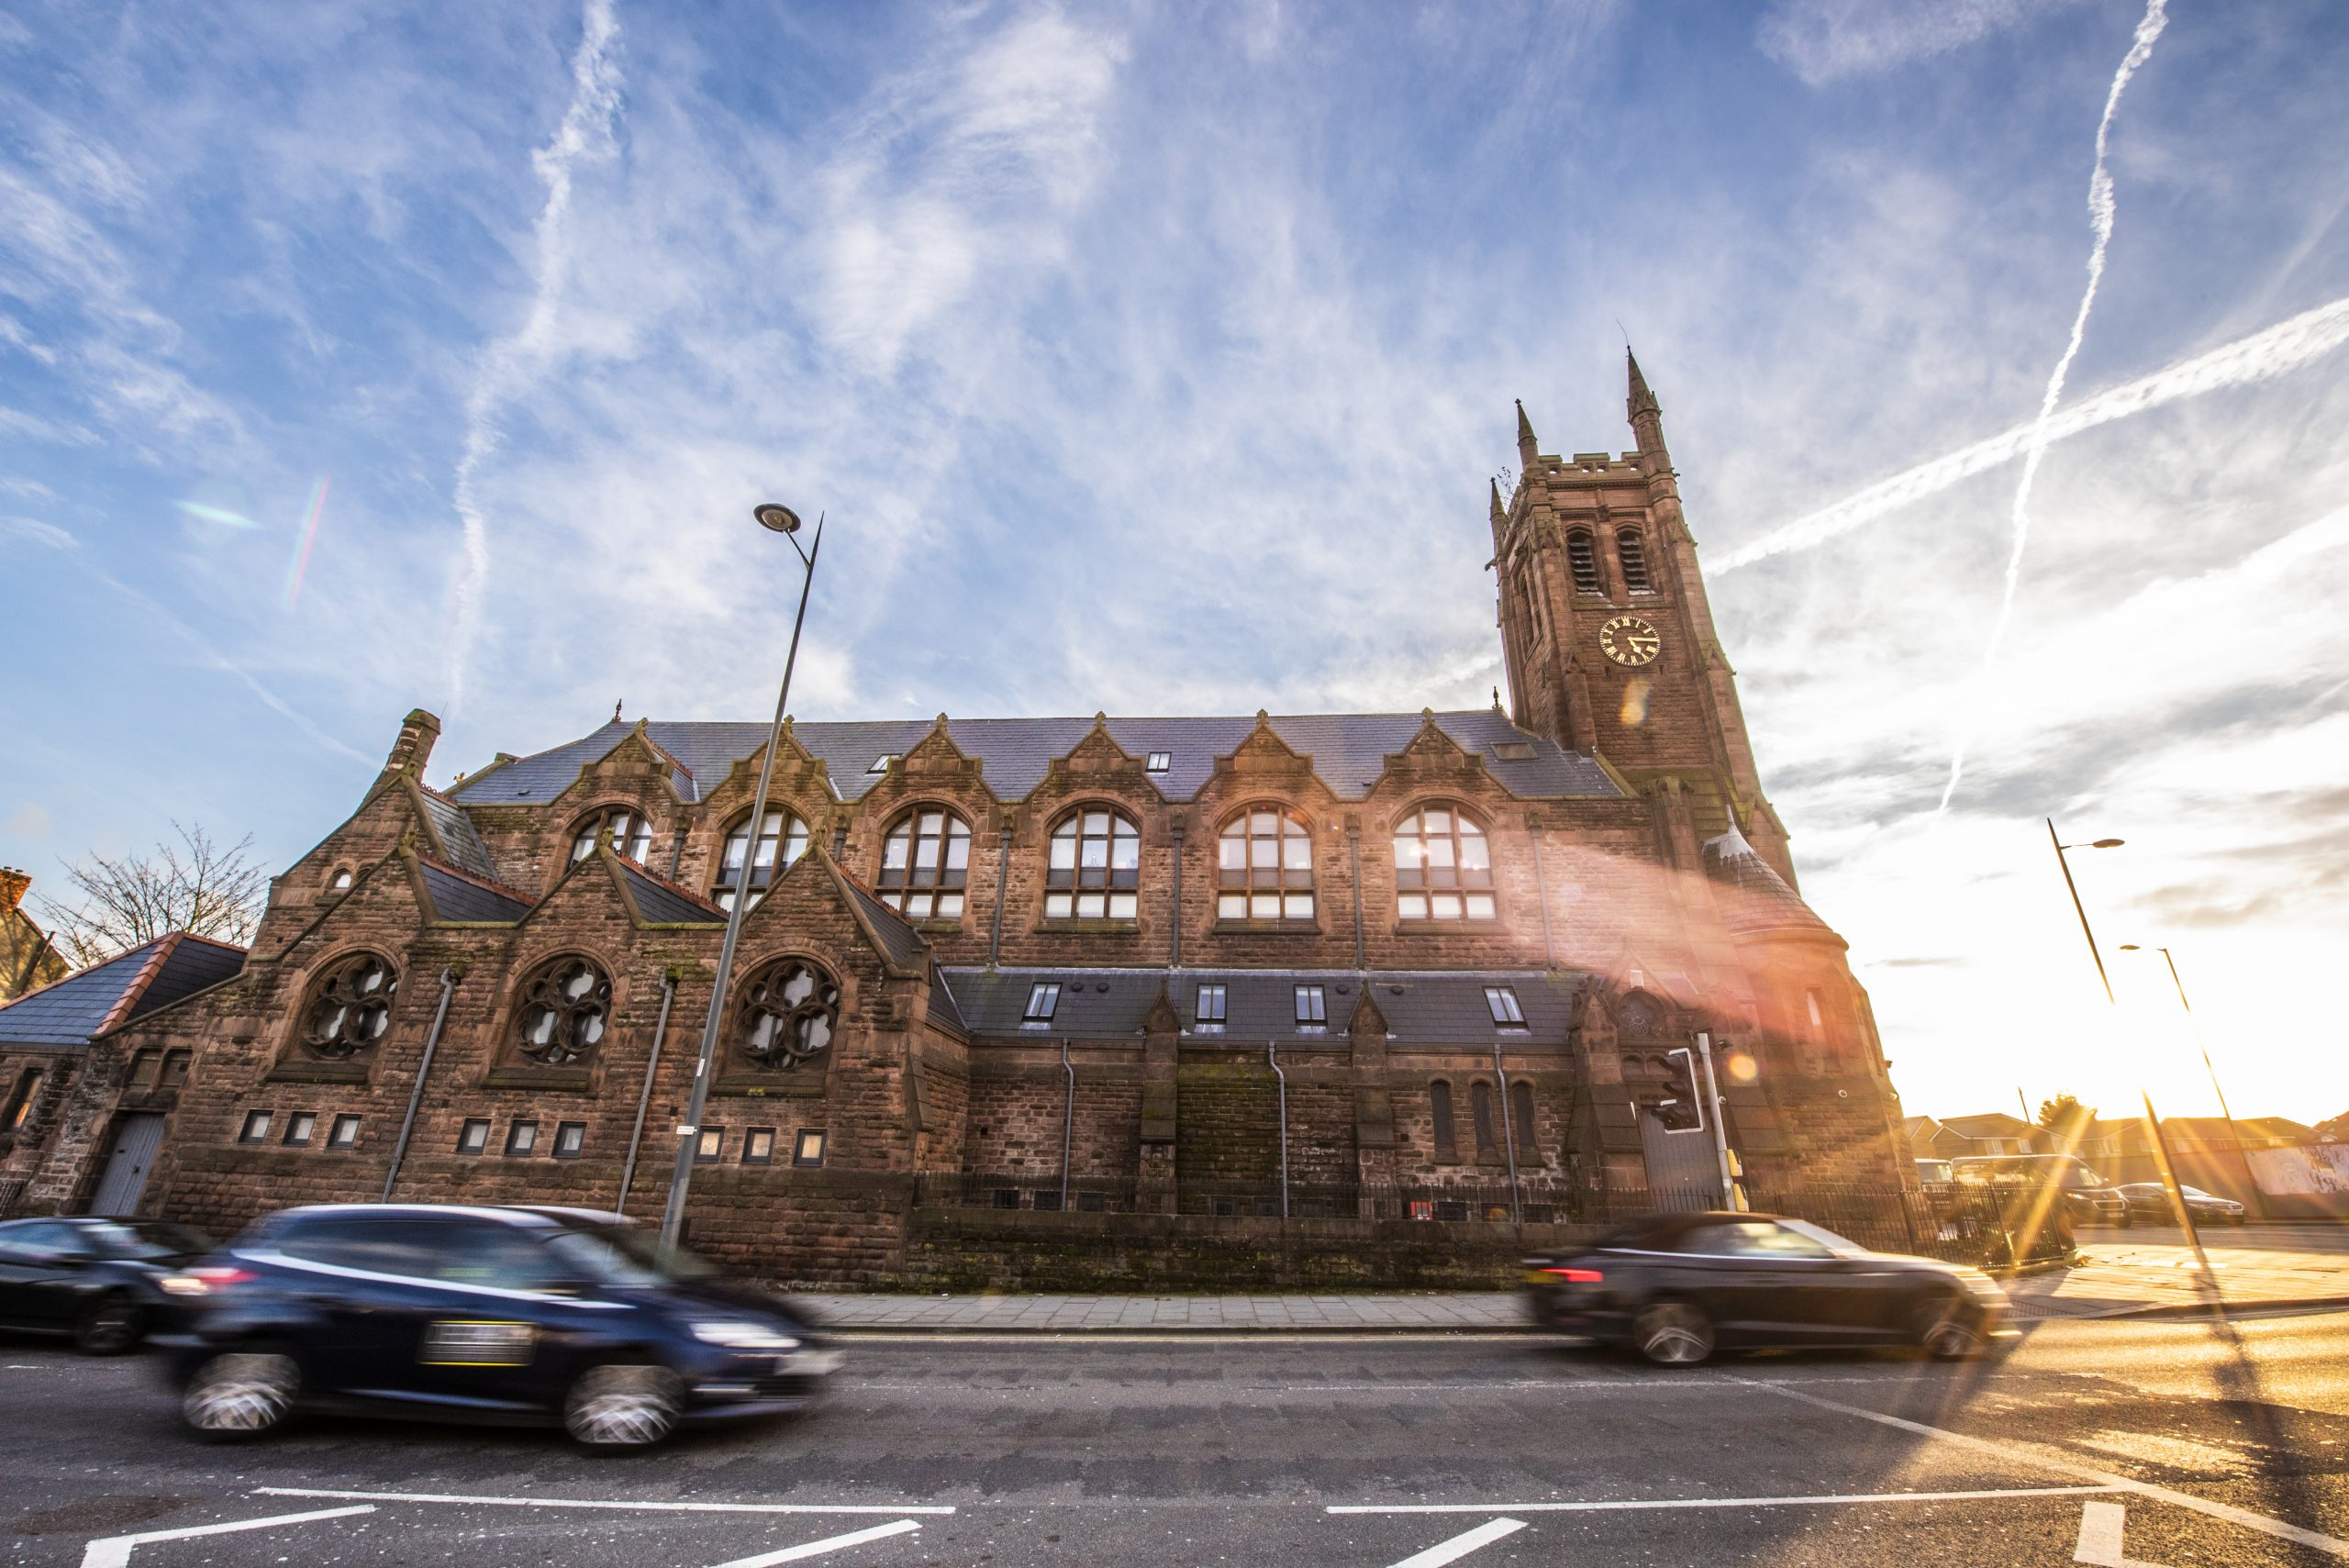 the front of St Cyprians, The Church Liverpool